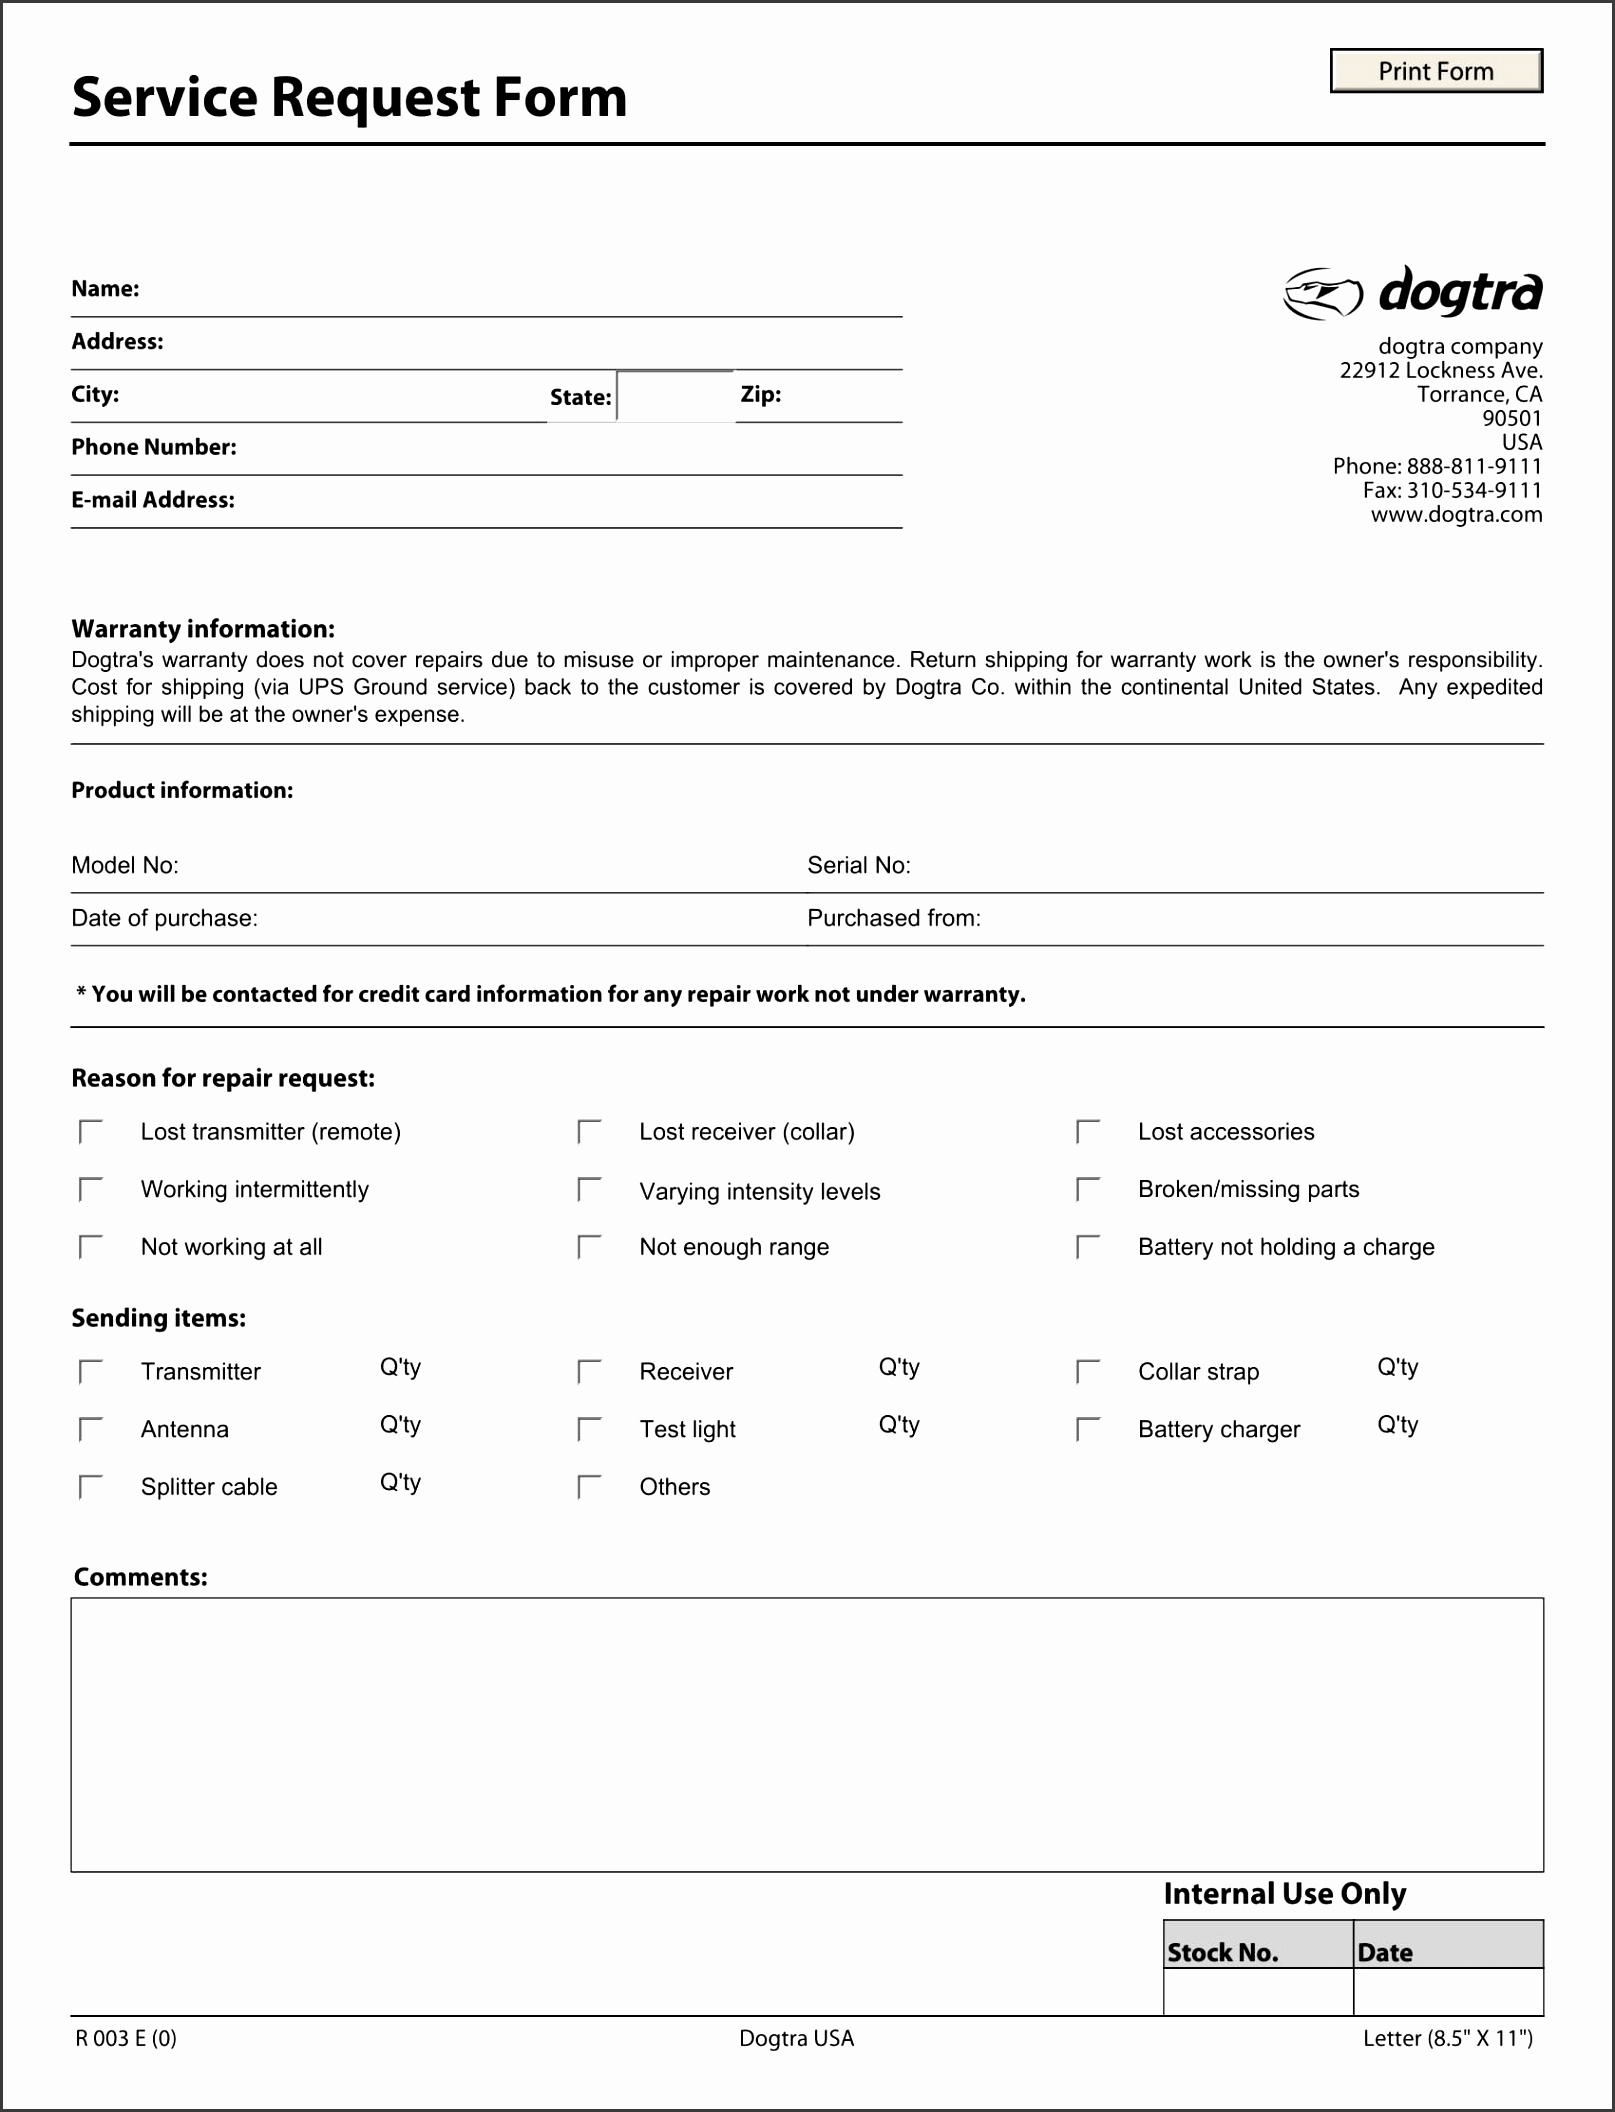 Service Request Form Sample customer